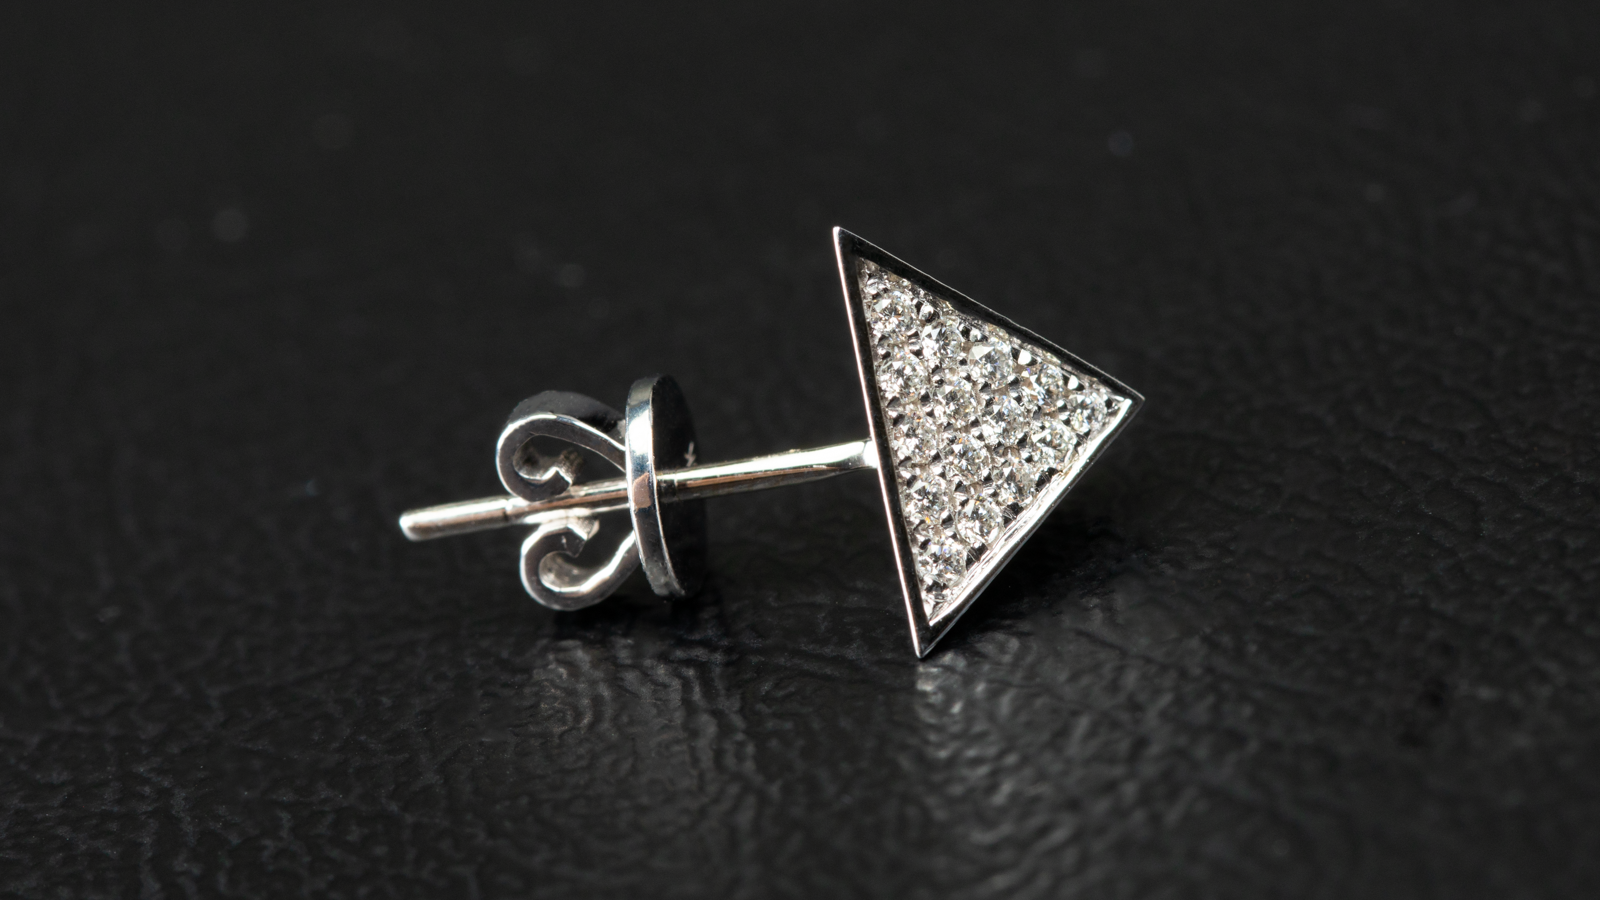 14k White Gold Pyramidal Shape Diamond Earrings